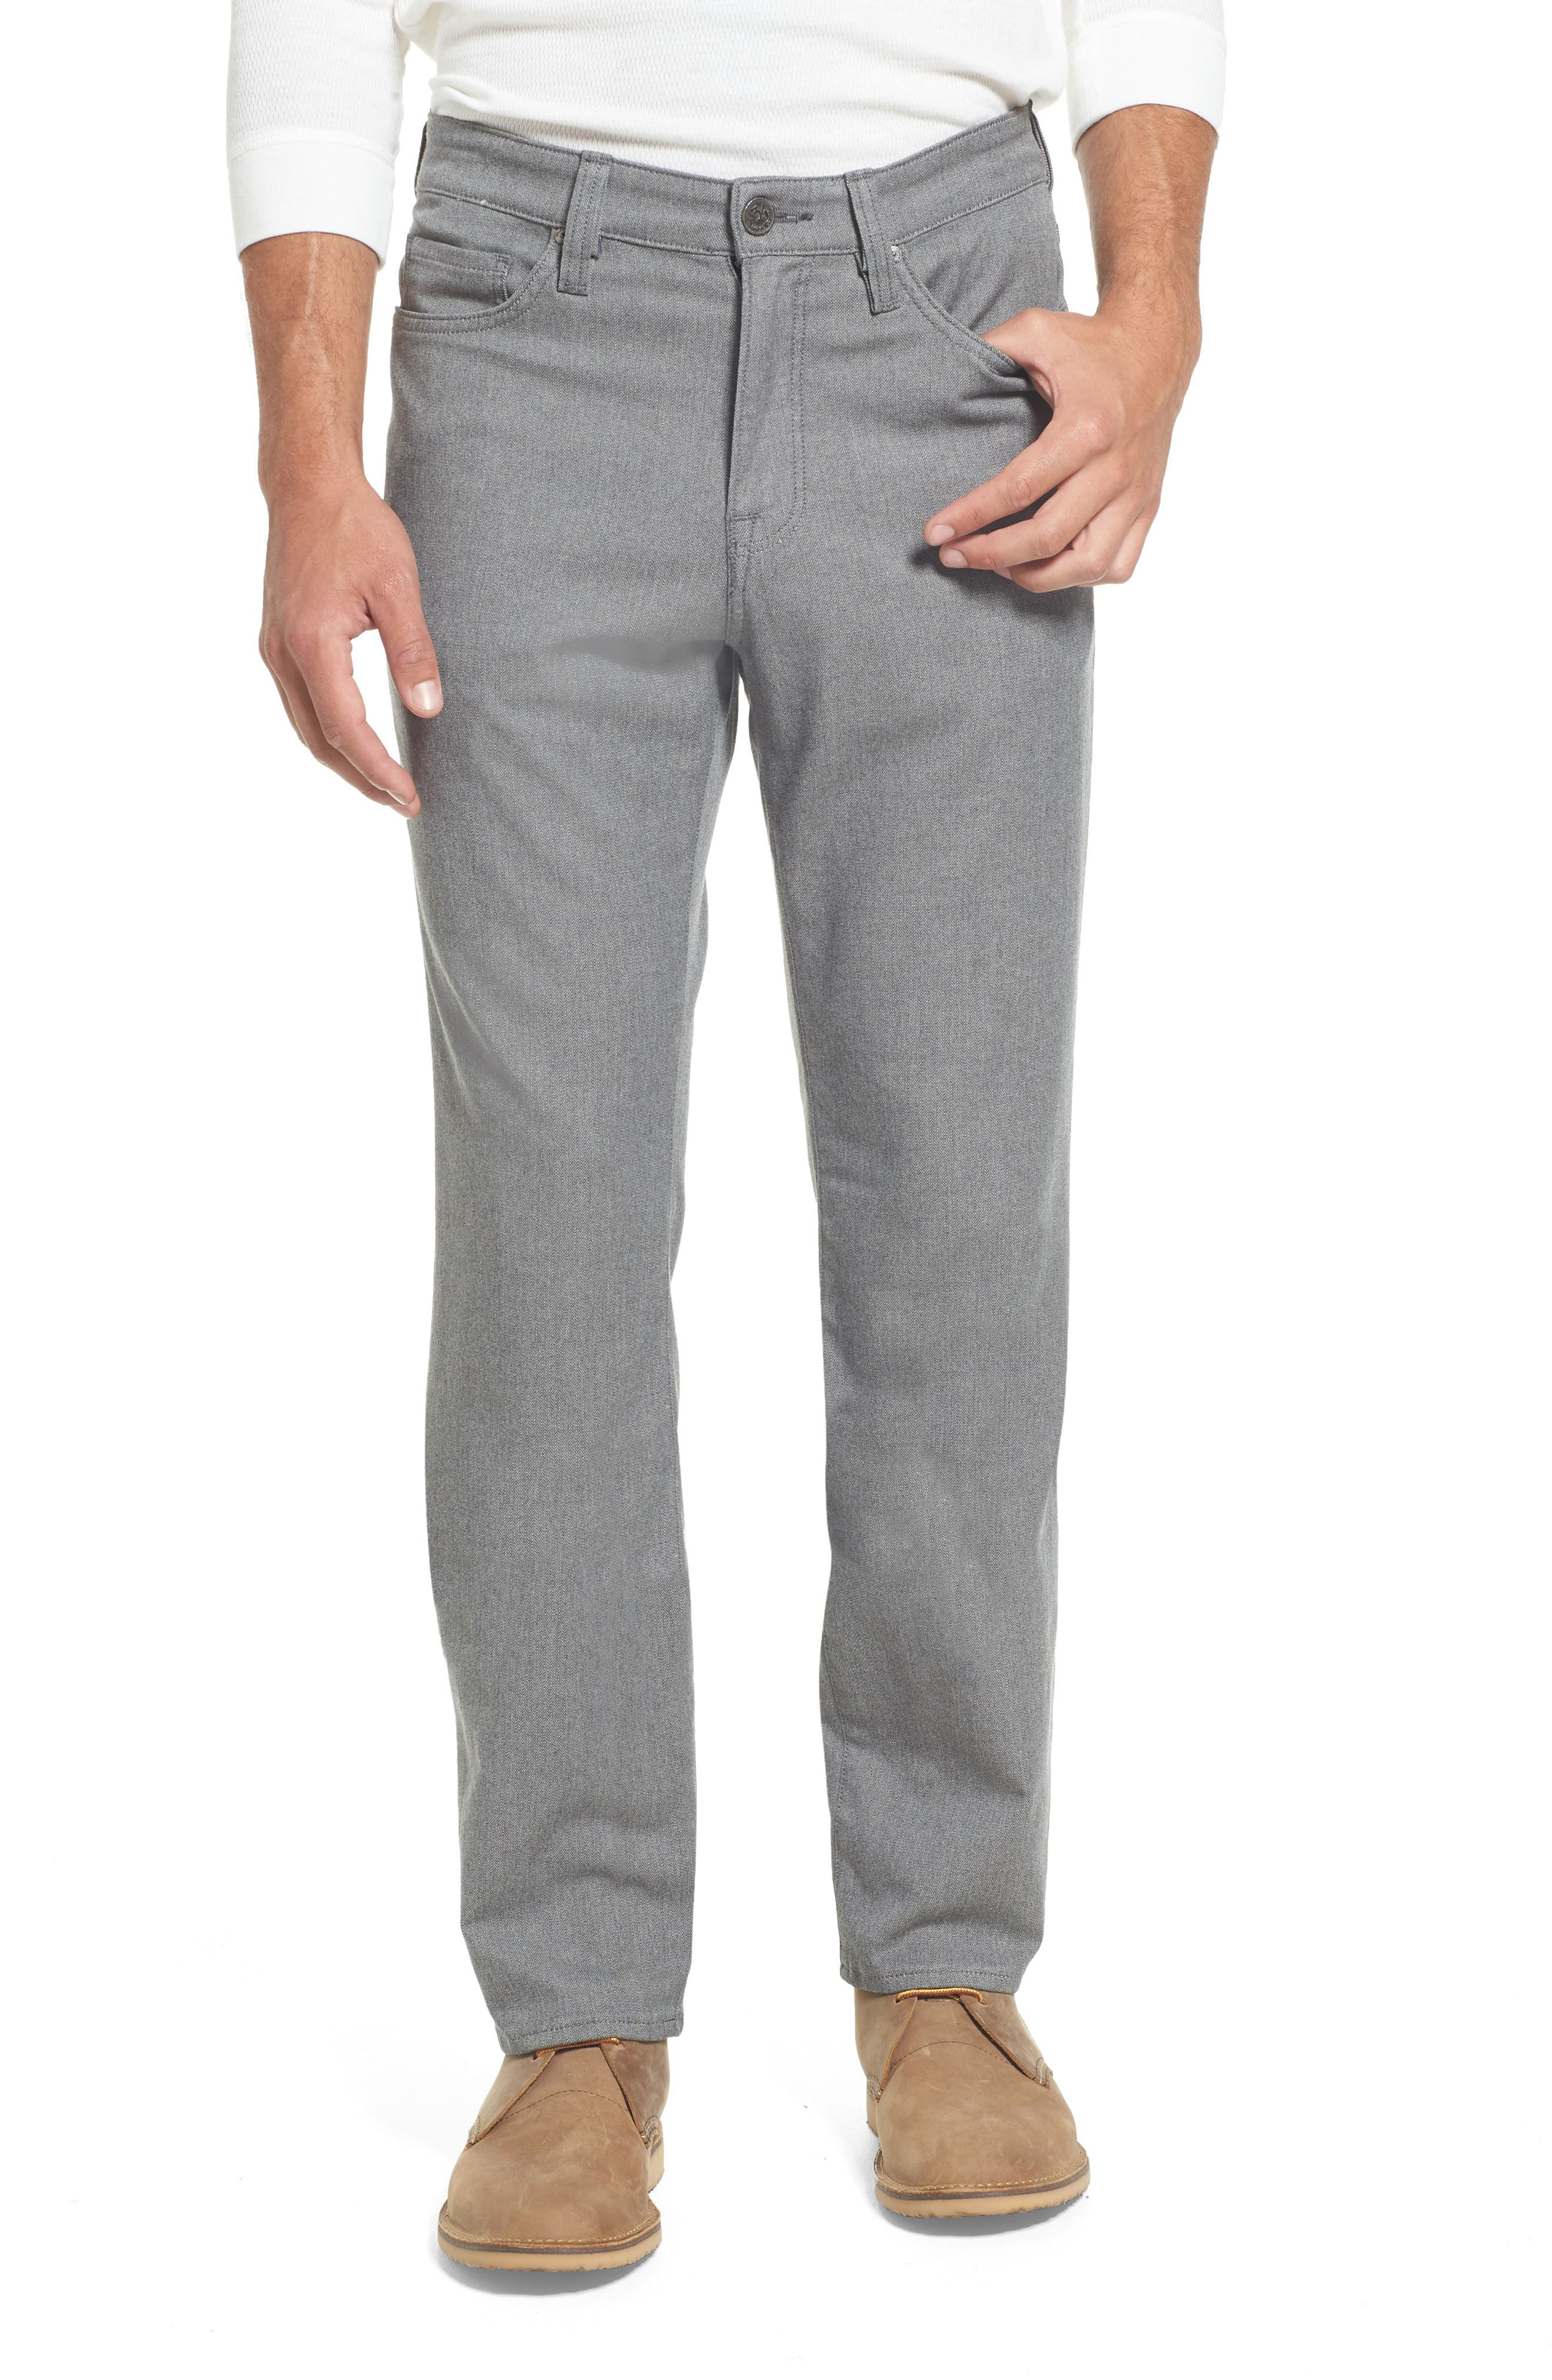 Charisma Relaxed Fit Jeans,                             Main thumbnail 1, color,                             Grey Winter Twill